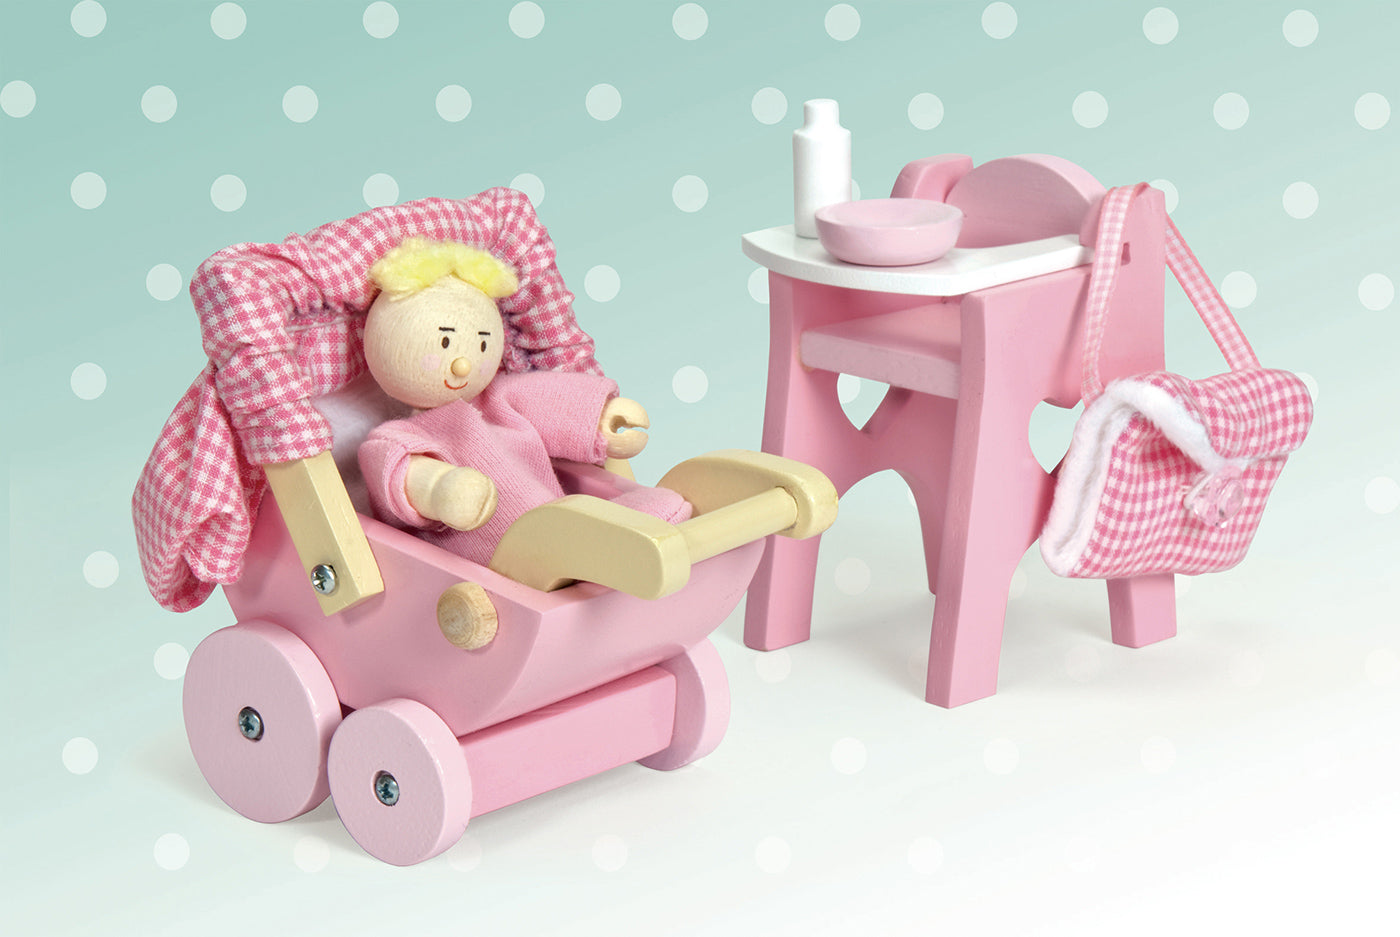 Le Toy Van - Nursery Accessory Set